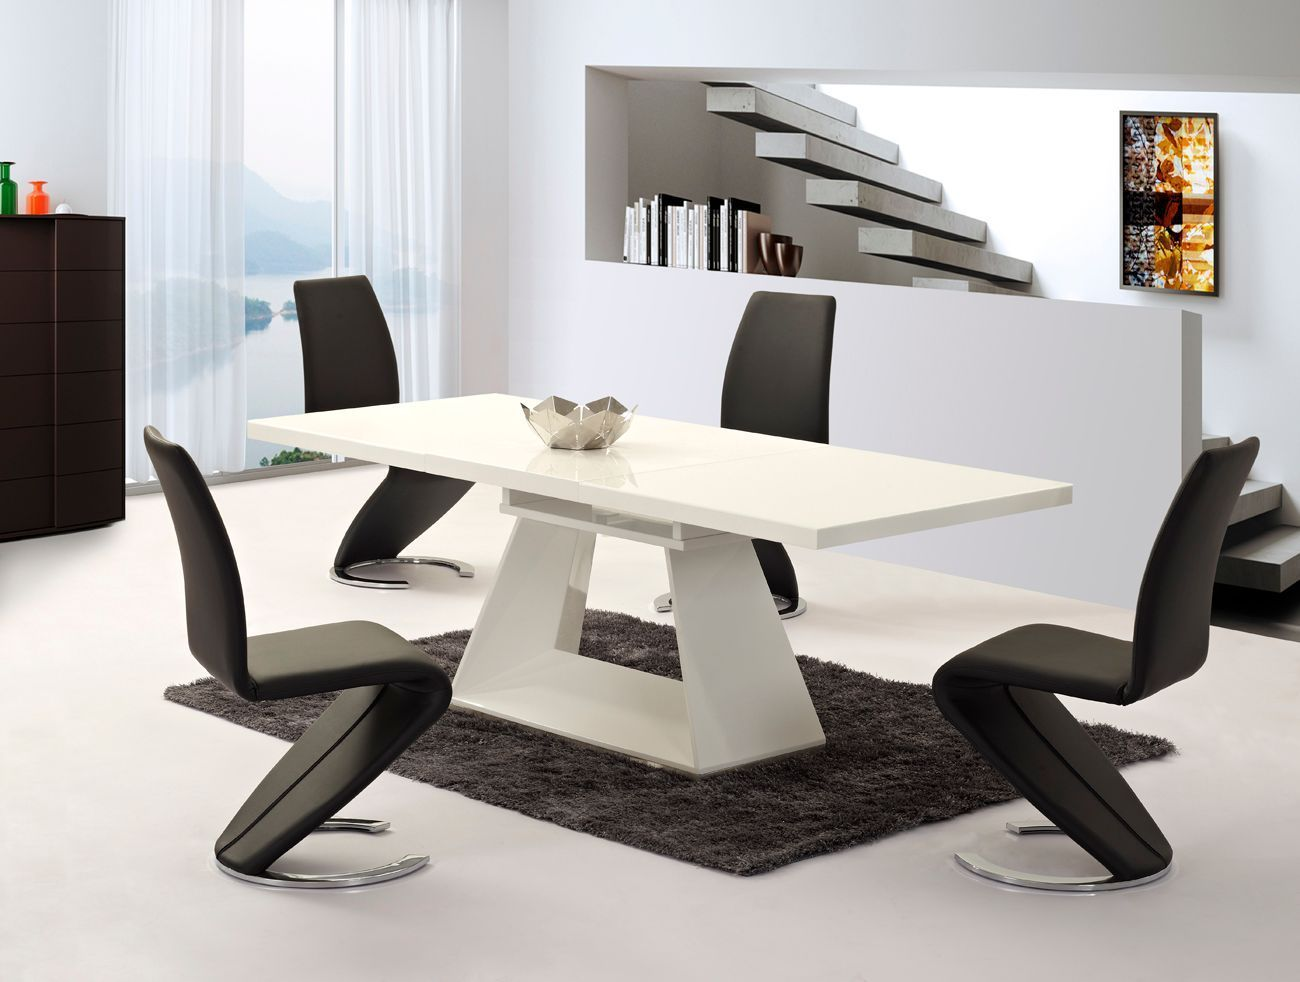 white high gloss dining table 6 chairs bicycle seat office chair extending and